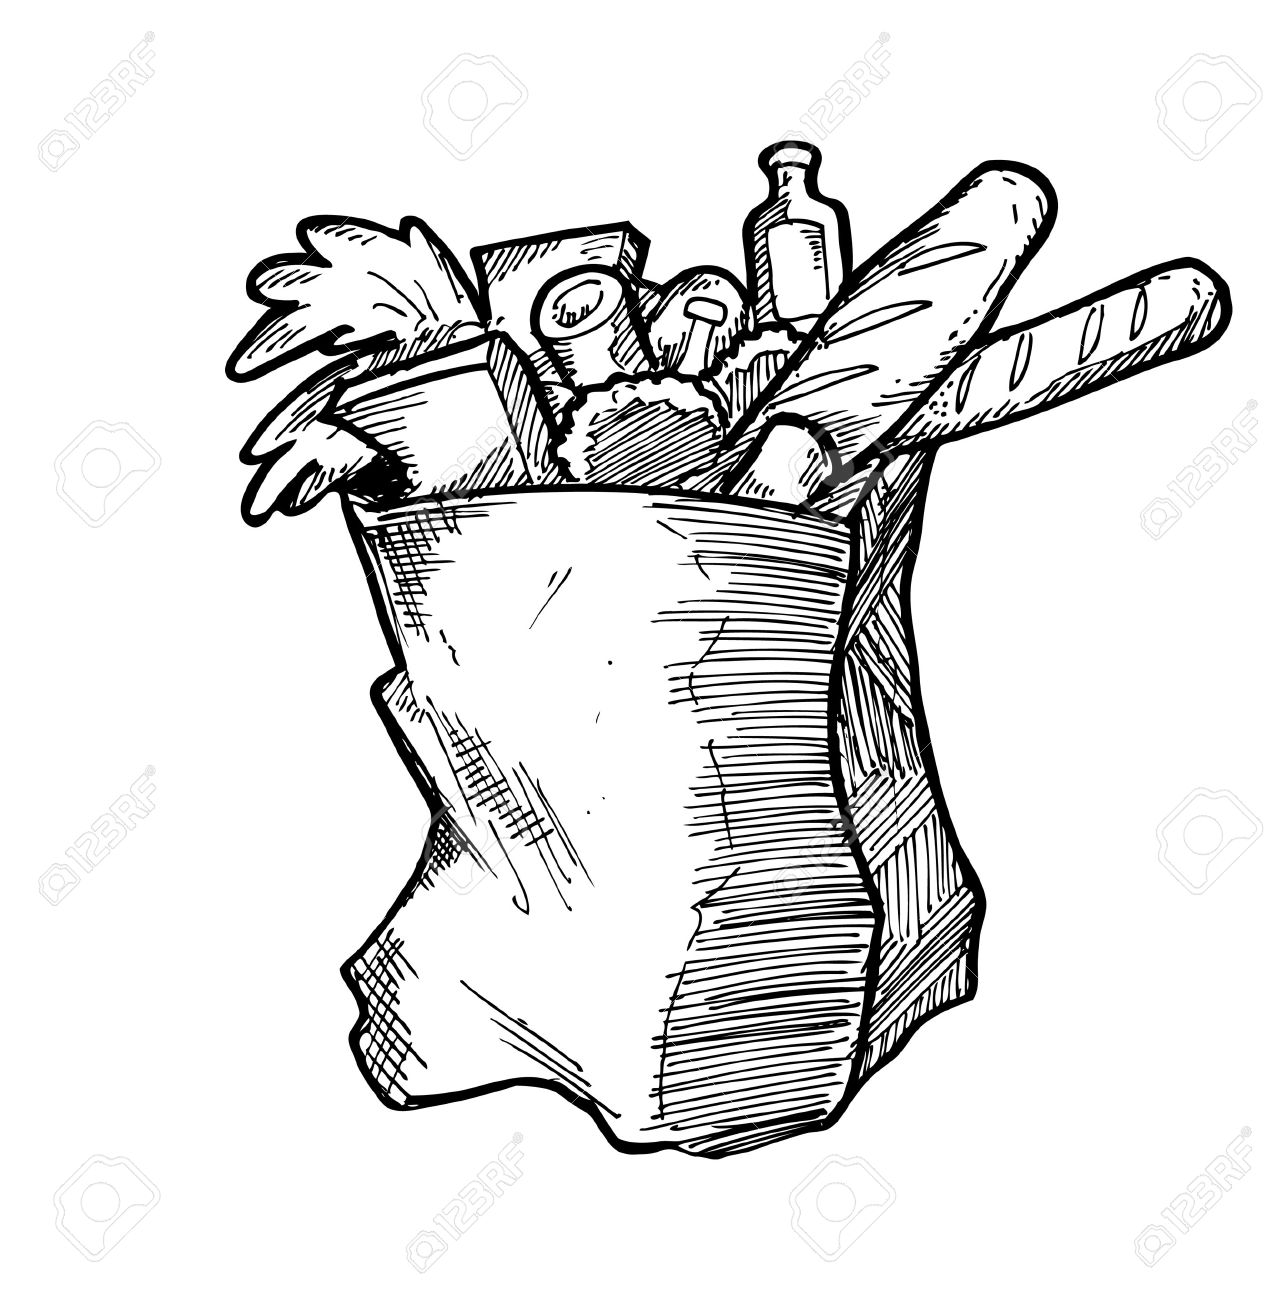 1286x1300 Hand Drawn Grocery Bag Royalty Free Cliparts, Vectors, And Stock